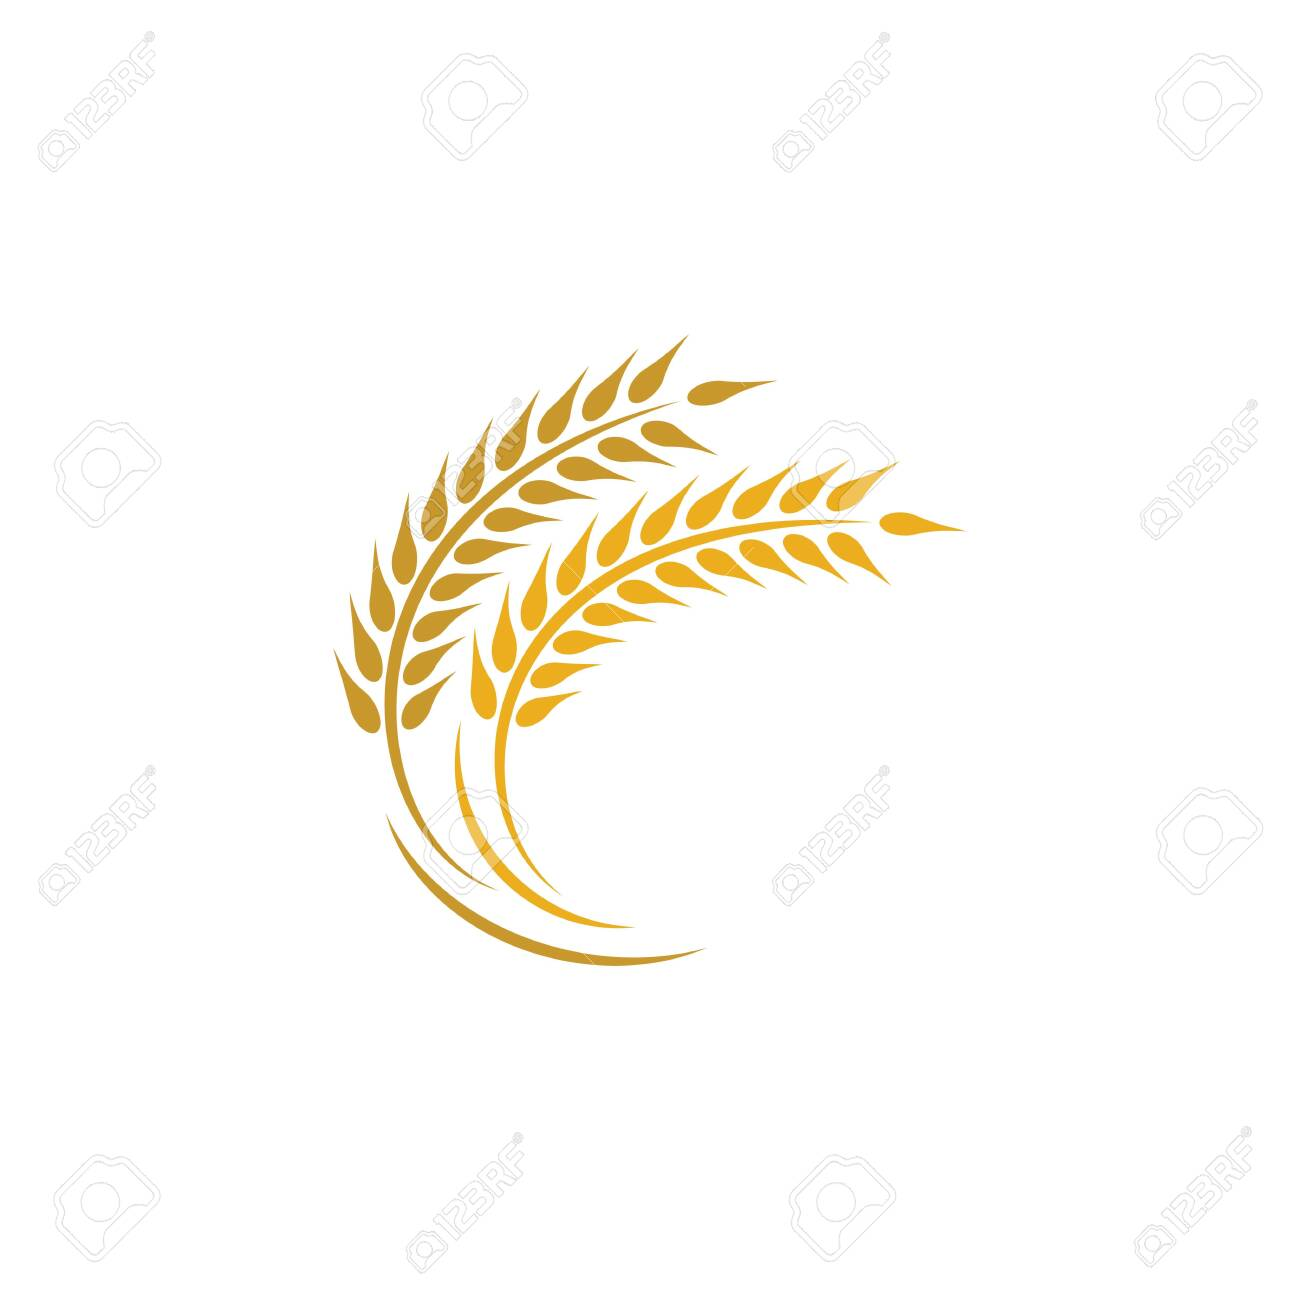 Agriculture wheat logo template vector icon design - 153838833